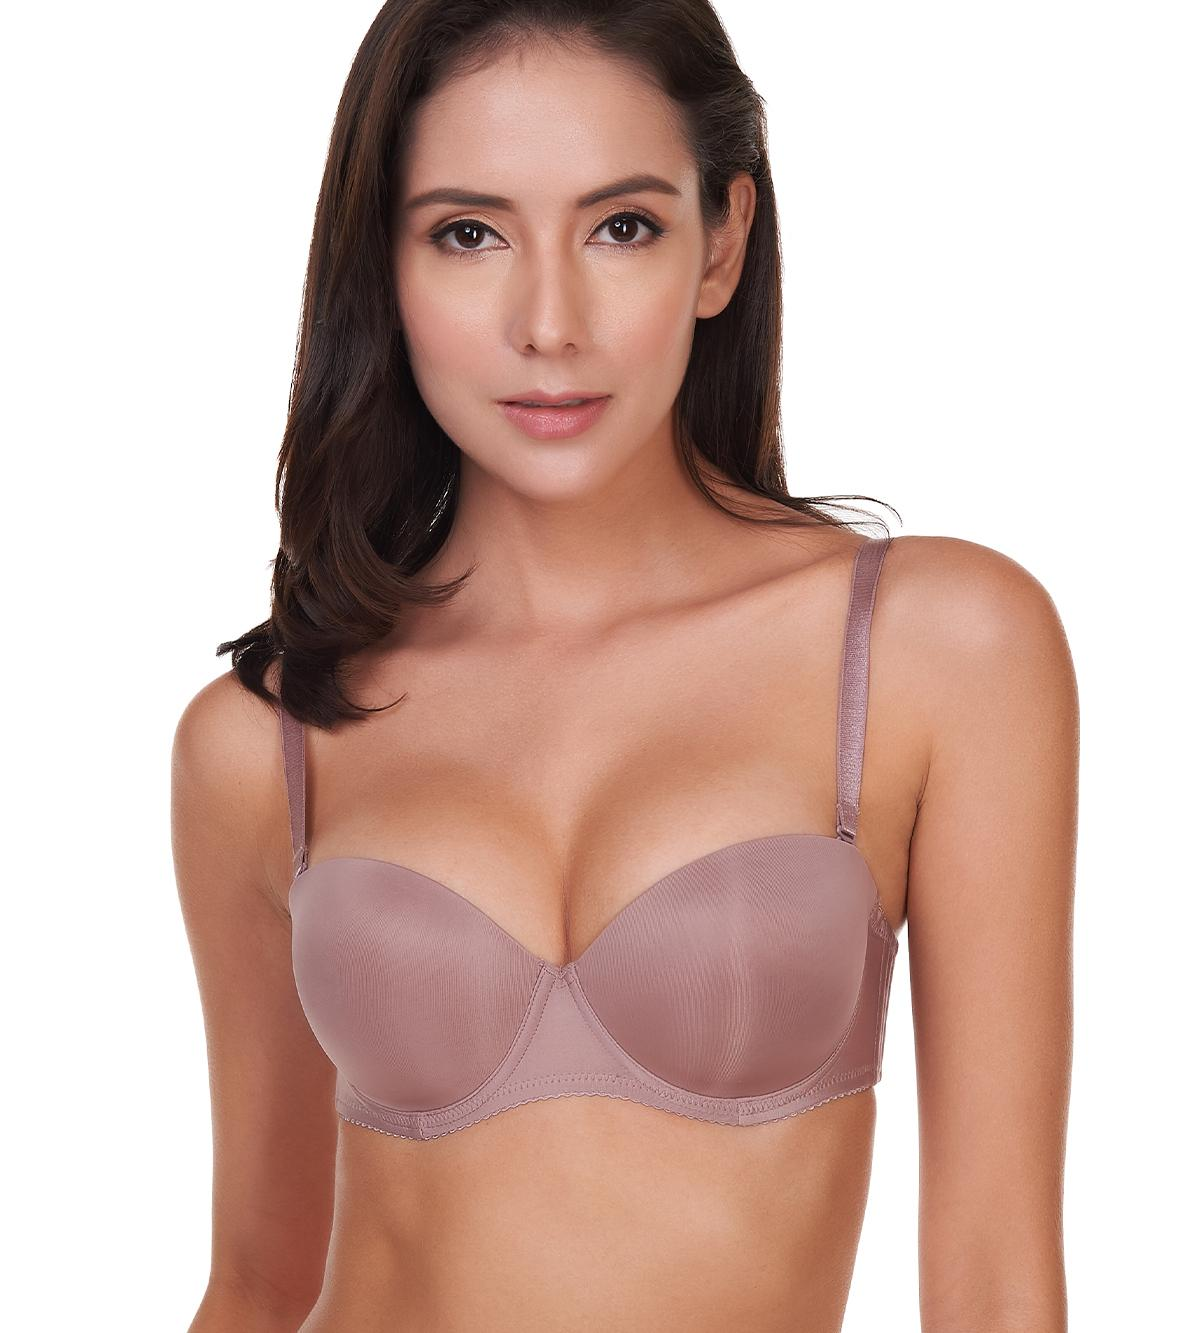 6d258f2a38f Triumph Fashion Wired Push Up Bra with Detachable Straps (Chocolate Mousse)  1002656300ZE